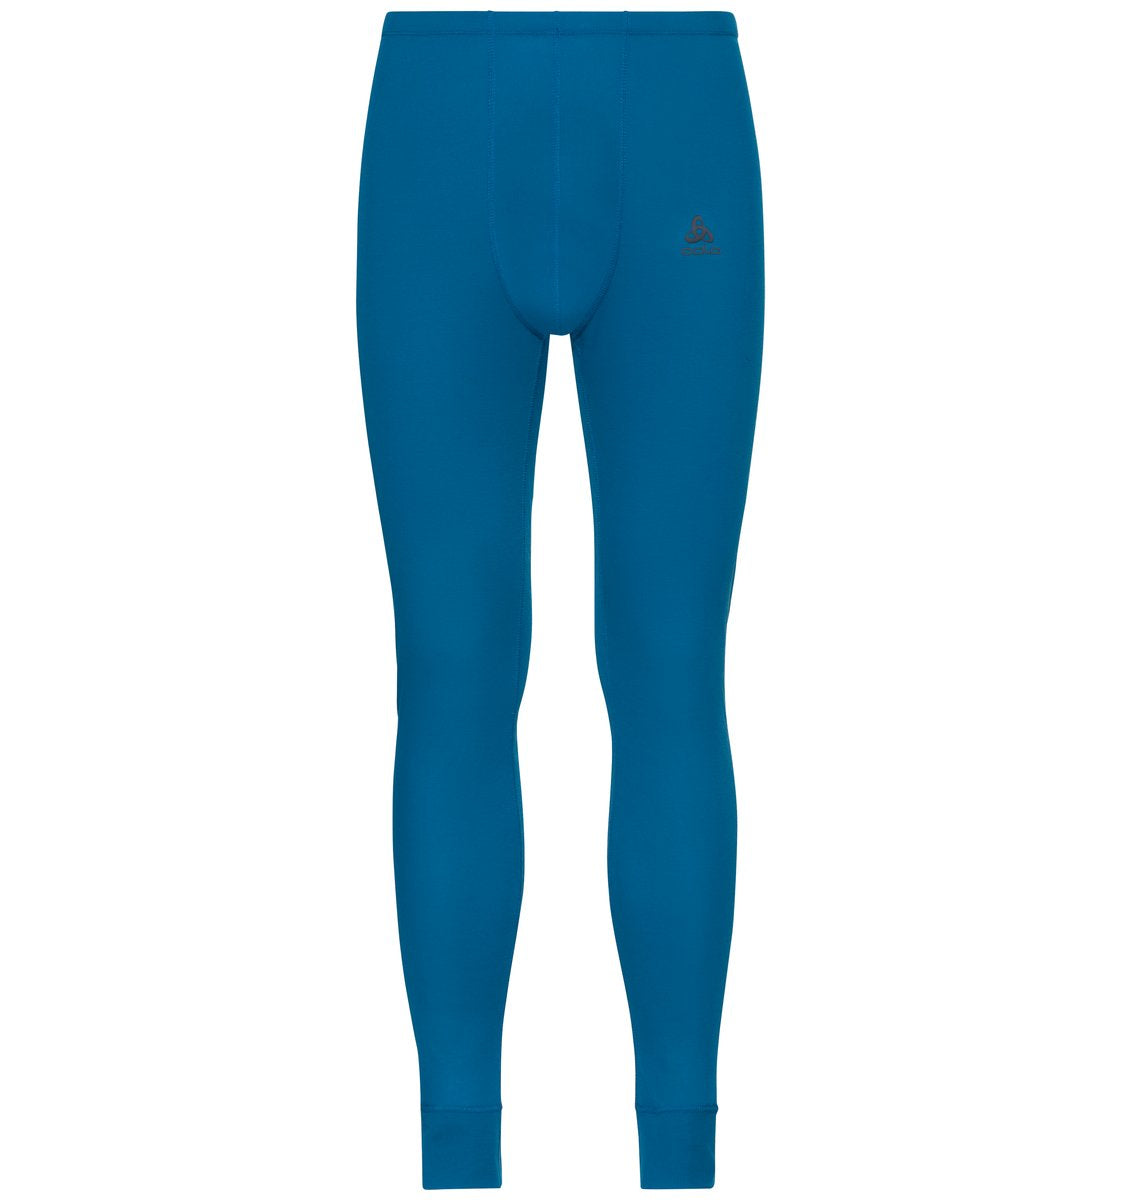 Odlo Men's ACTIVE WARM ECO Baselayer Pants